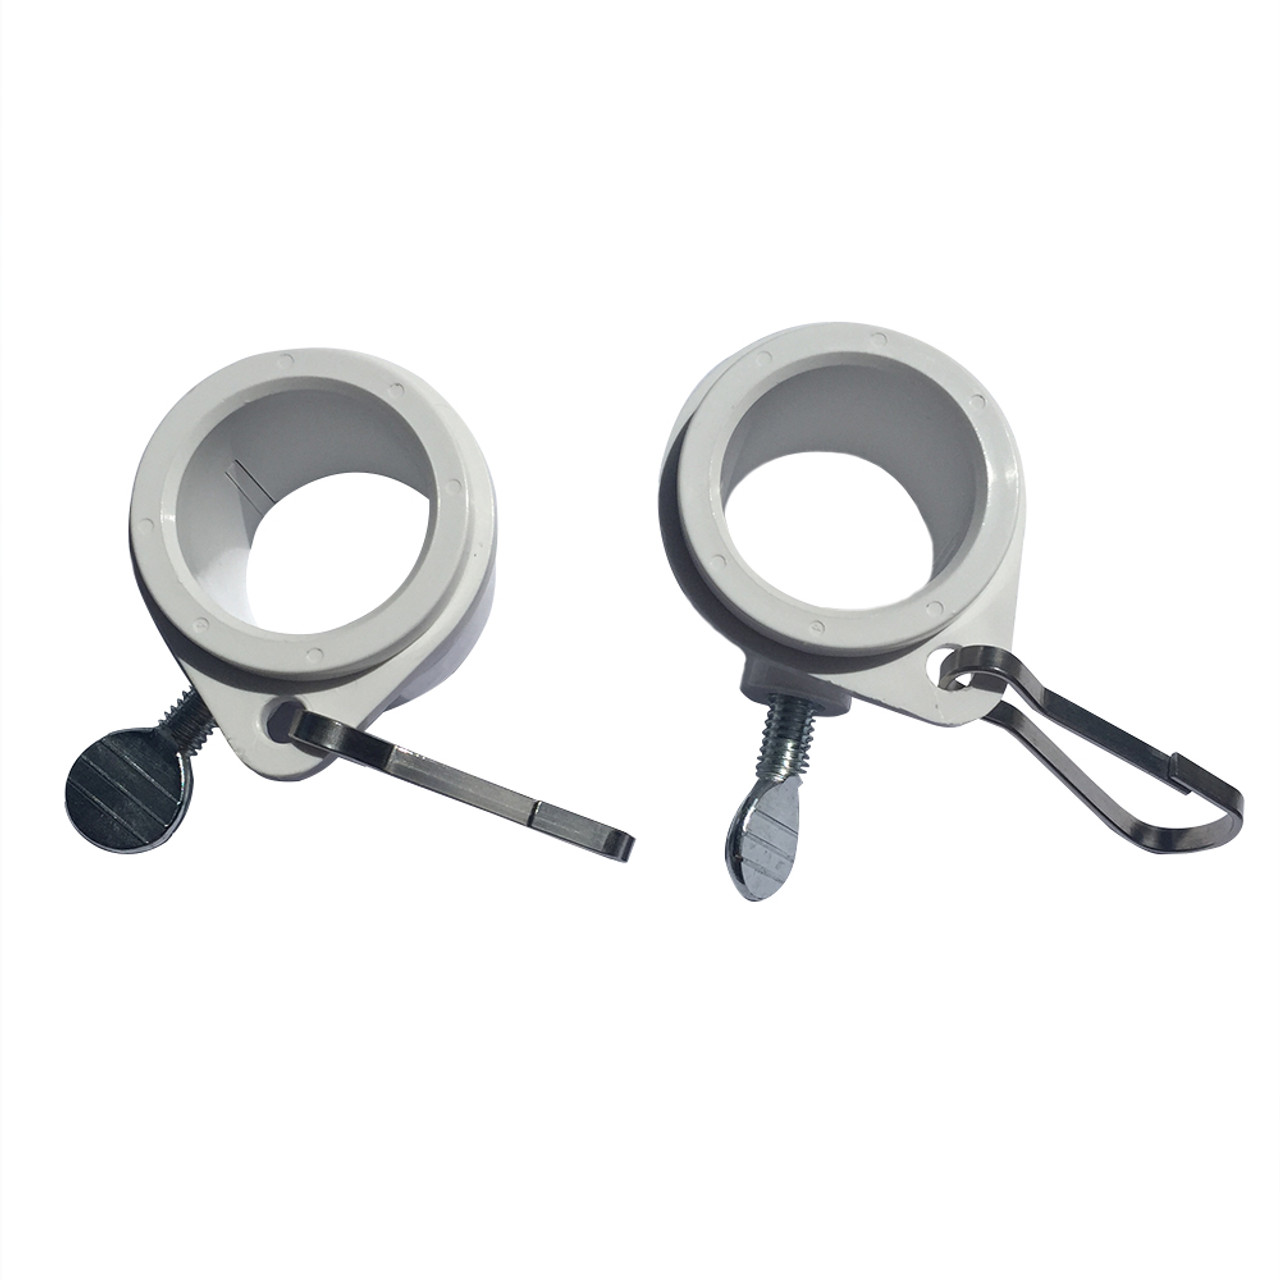 "Rotating Flag Mounting Rings WHITE 2 Pack fits 1/"" Diameter Flag Pole Made in USA"